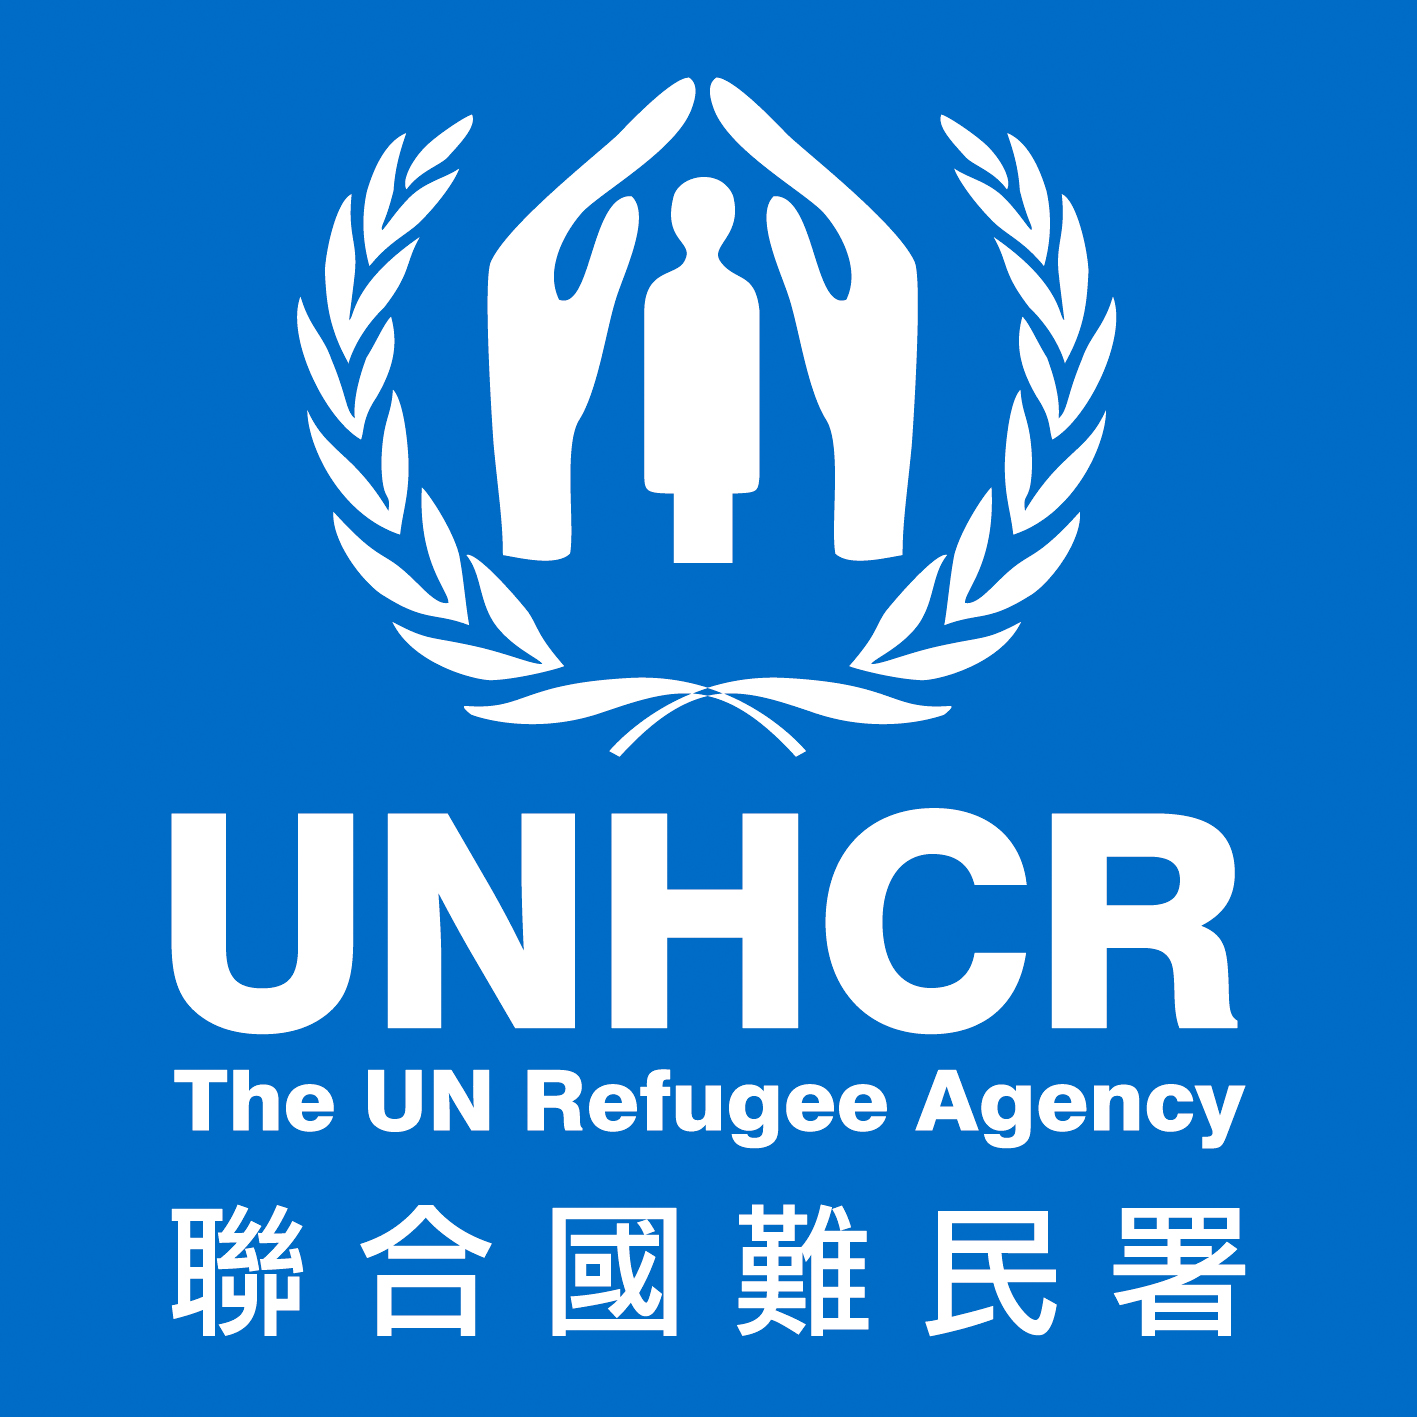 UAE Pledges US$200,000 to UNHCR's 2013 Budget